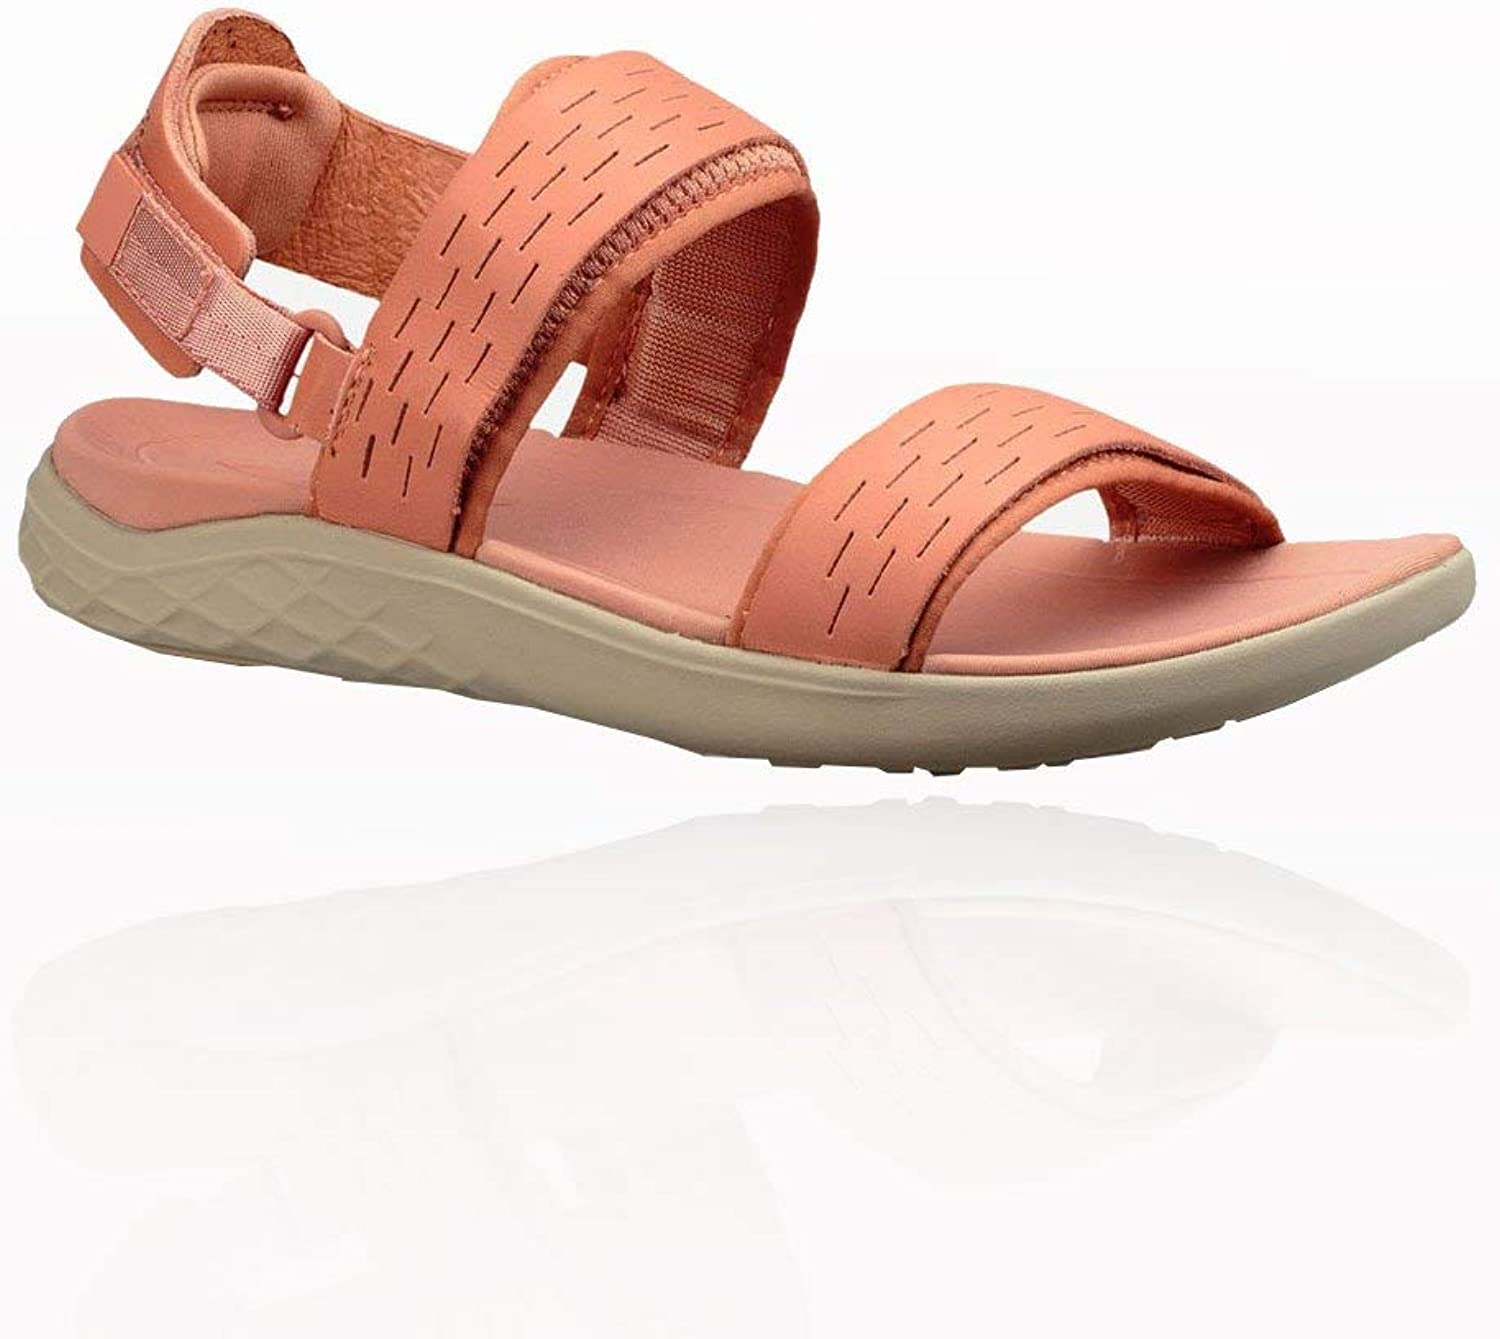 Teva Terra-Float 2 Lux Nova Women's Walking Sandals